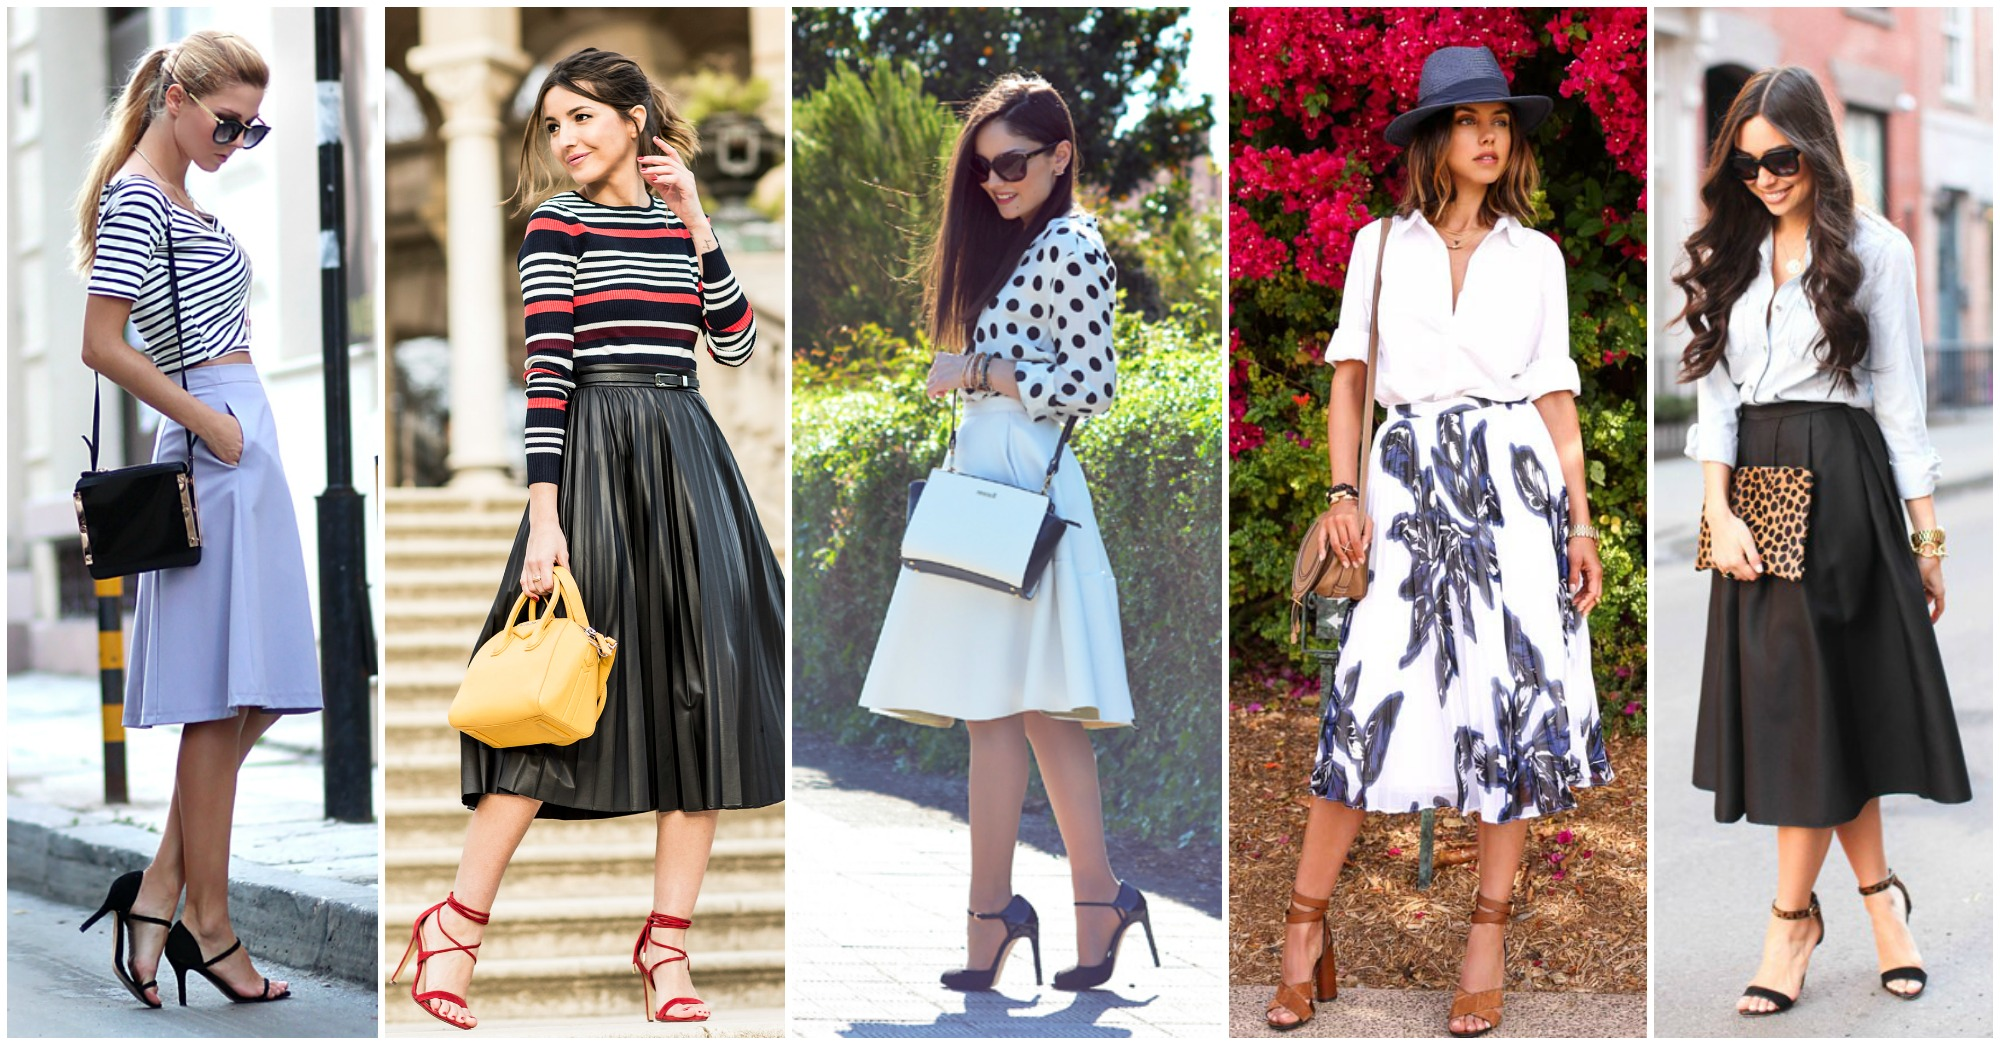 Stylish and Chic Ways to Wear Midi Skirts This Season